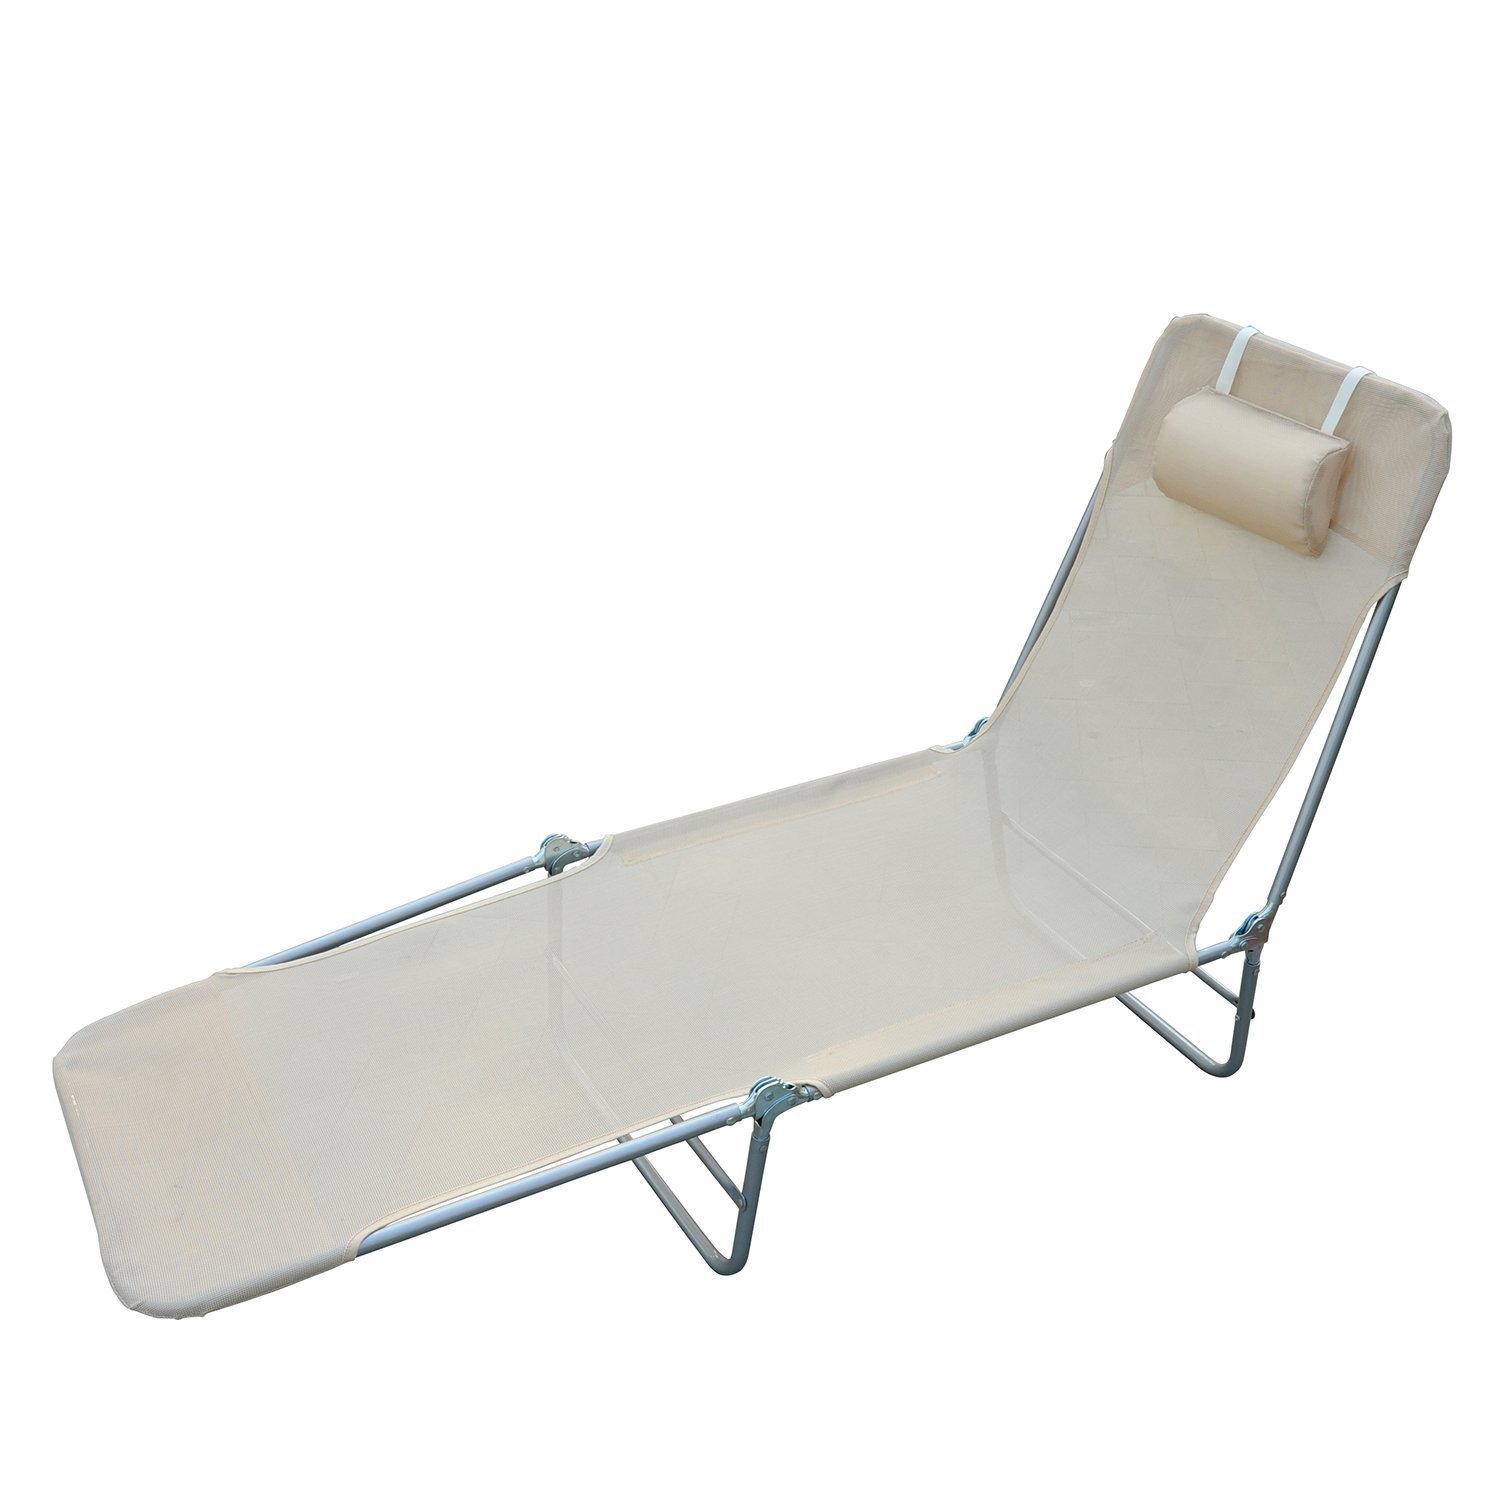 Outsunny Folding Portable Beach Lounge Chair Reclining Patio